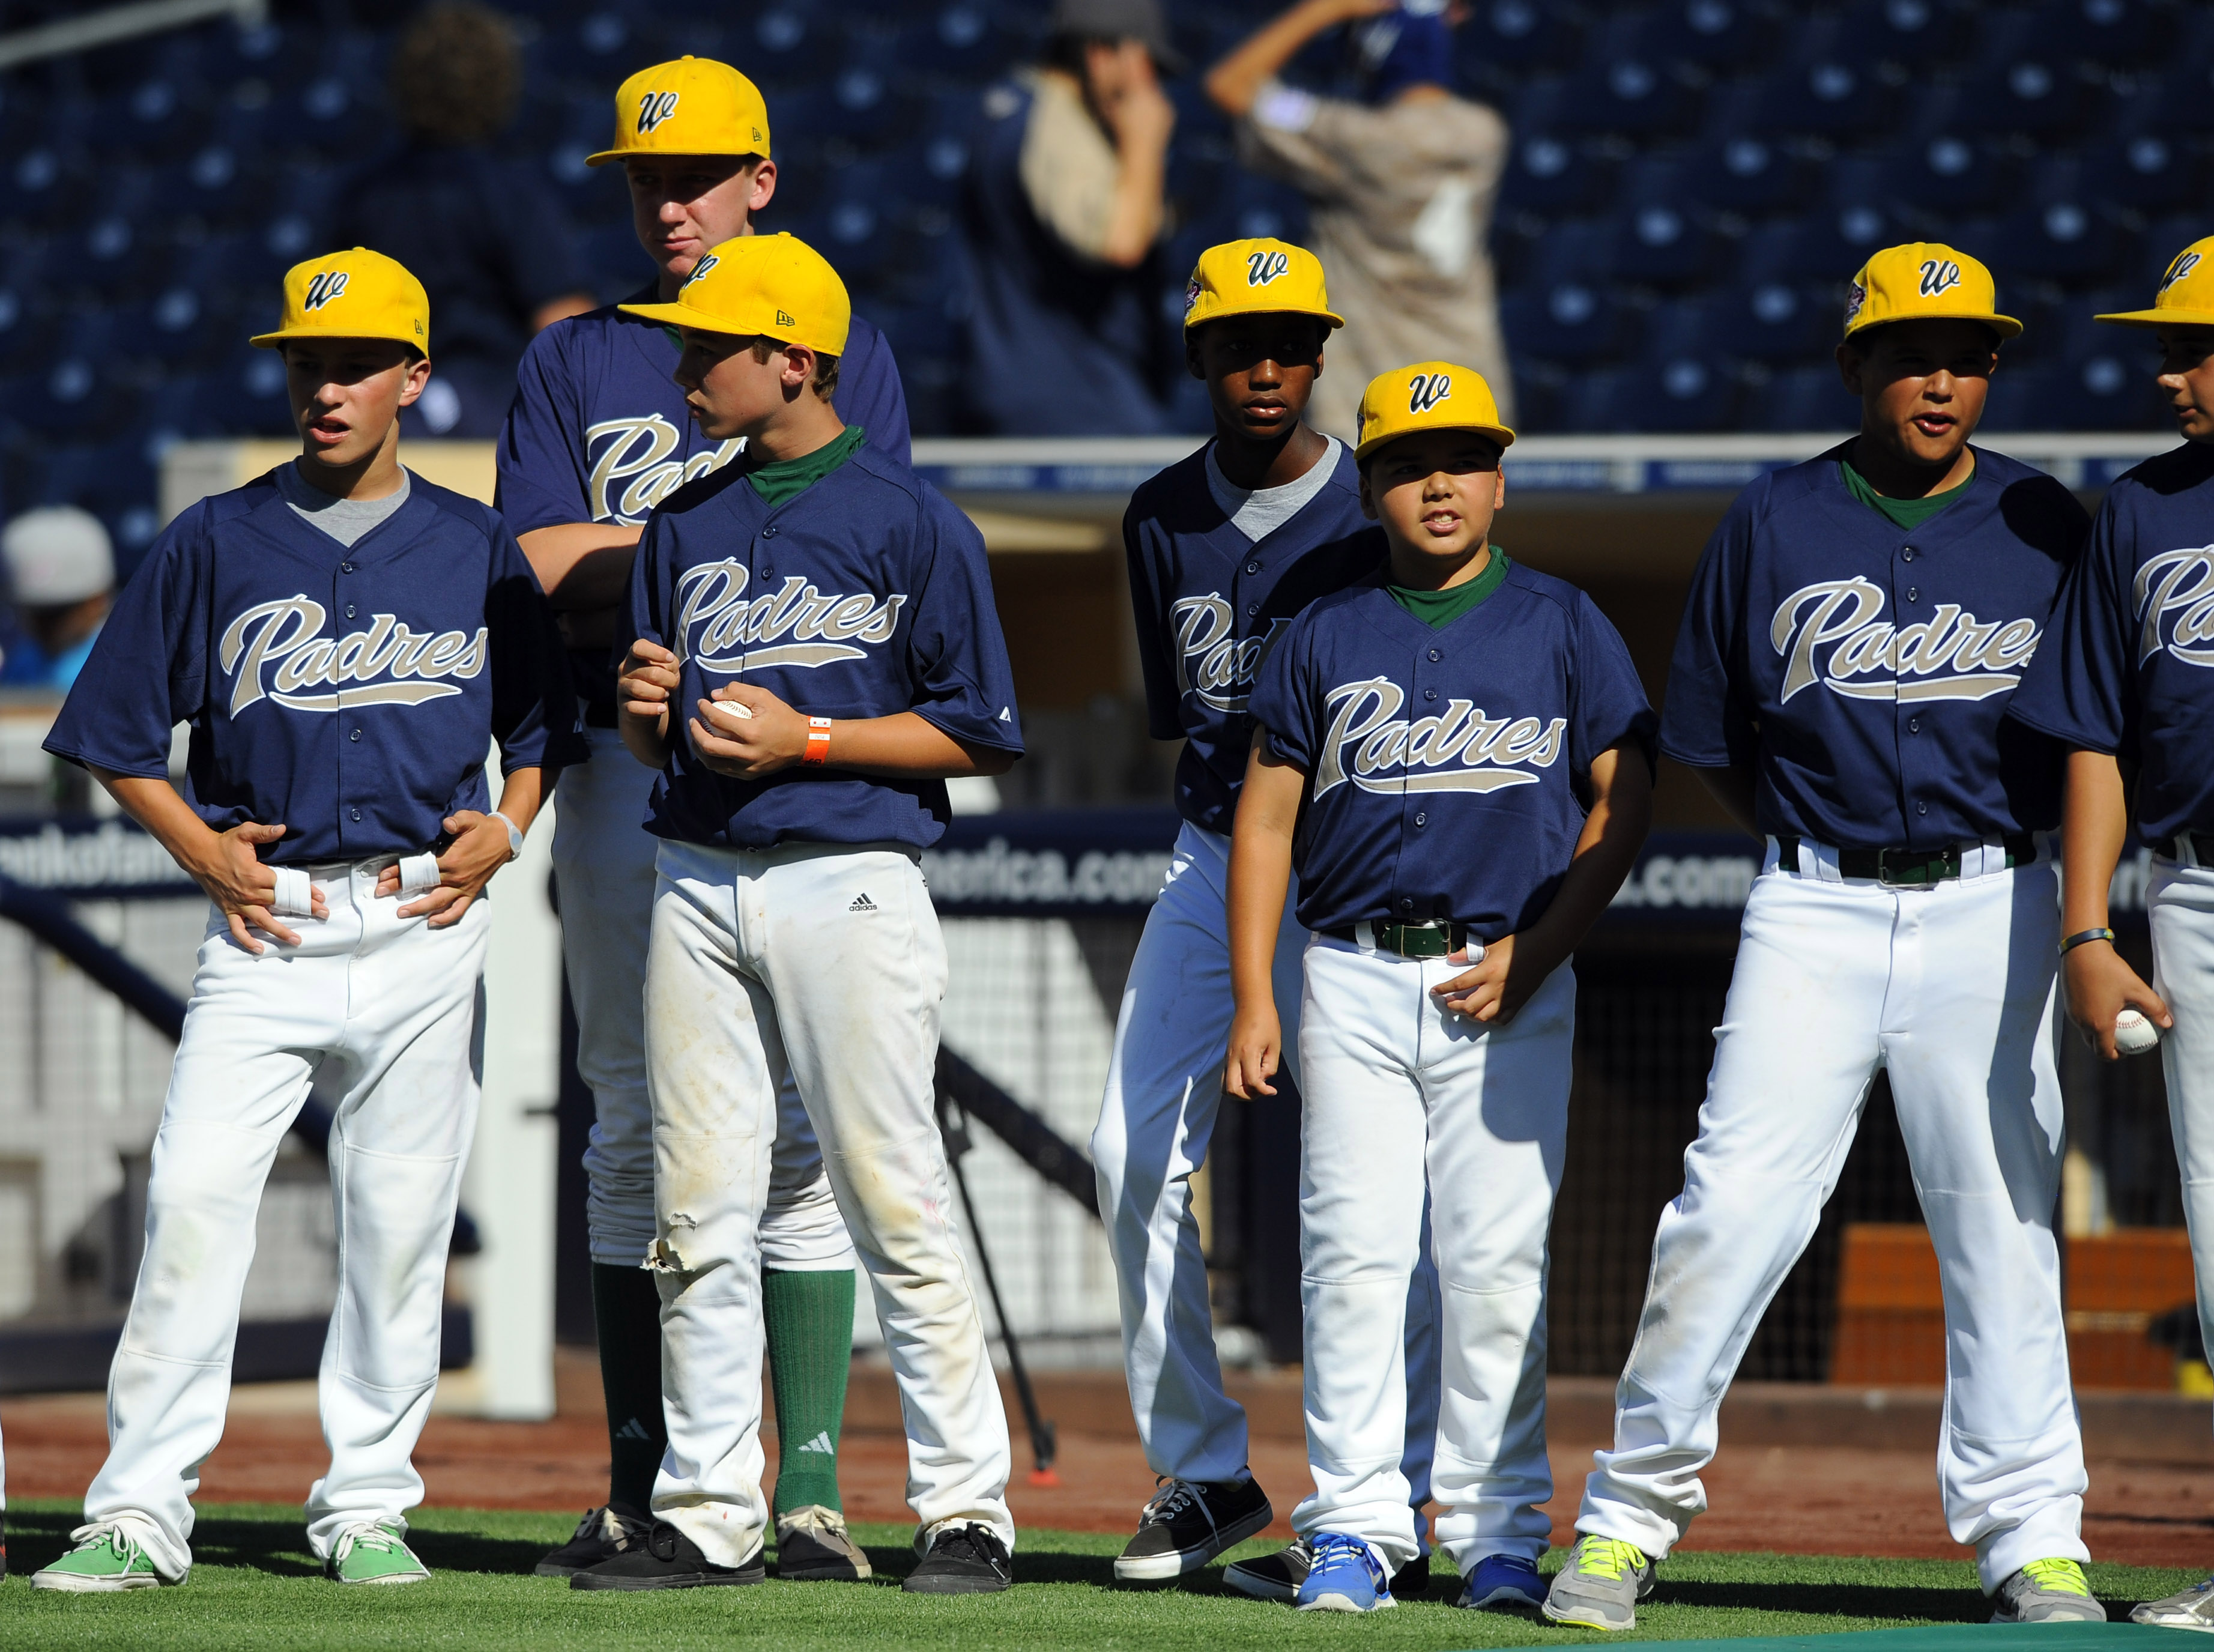 The Padres will be distributing their hugely popular Little League uniforms on Sunday.